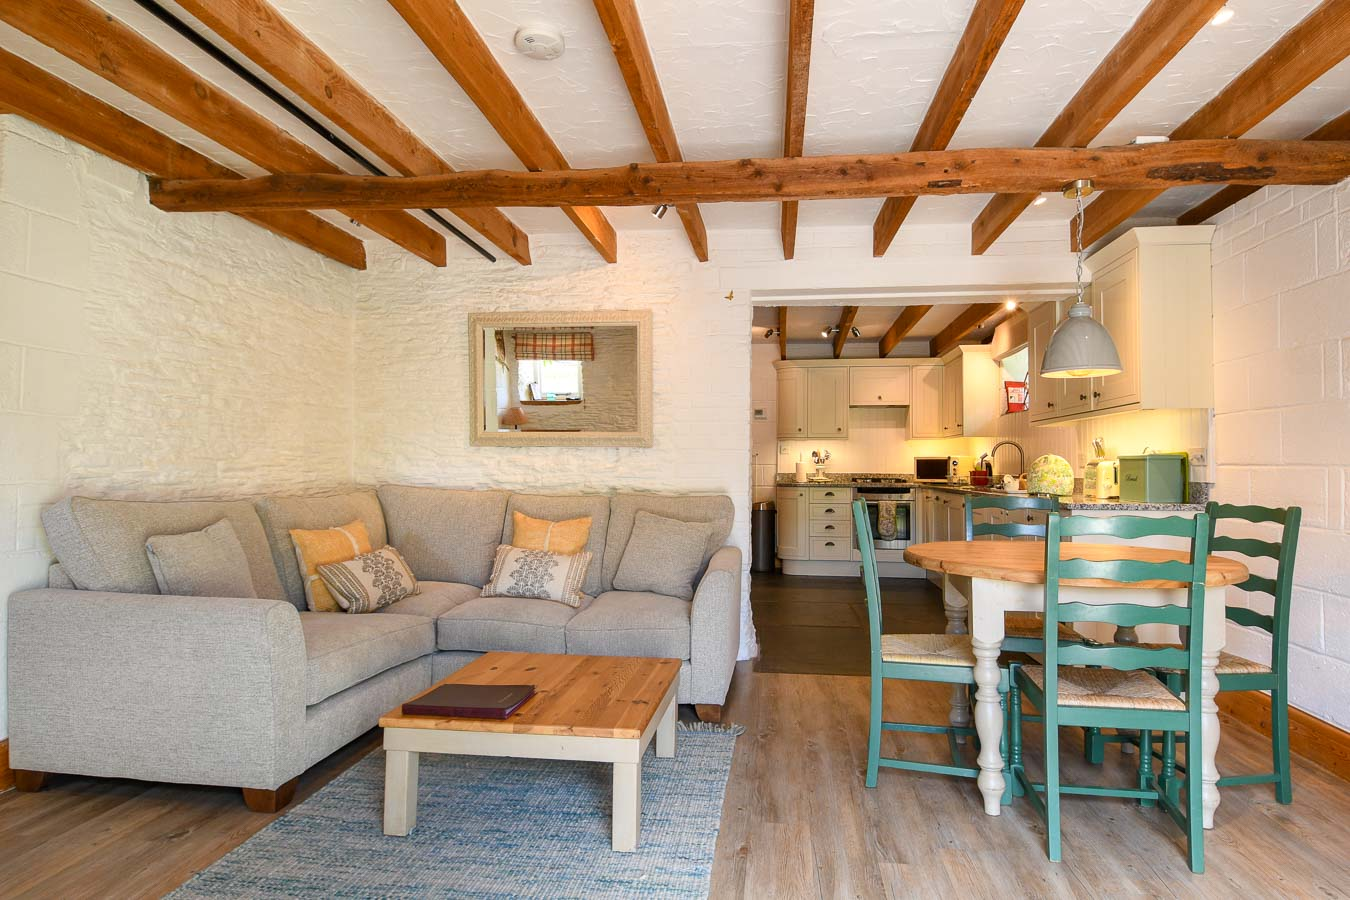 Quarry cottage's open plan living room with fresh colour scheme corner sofa and round table for four at Flear Farm holiday cottages.